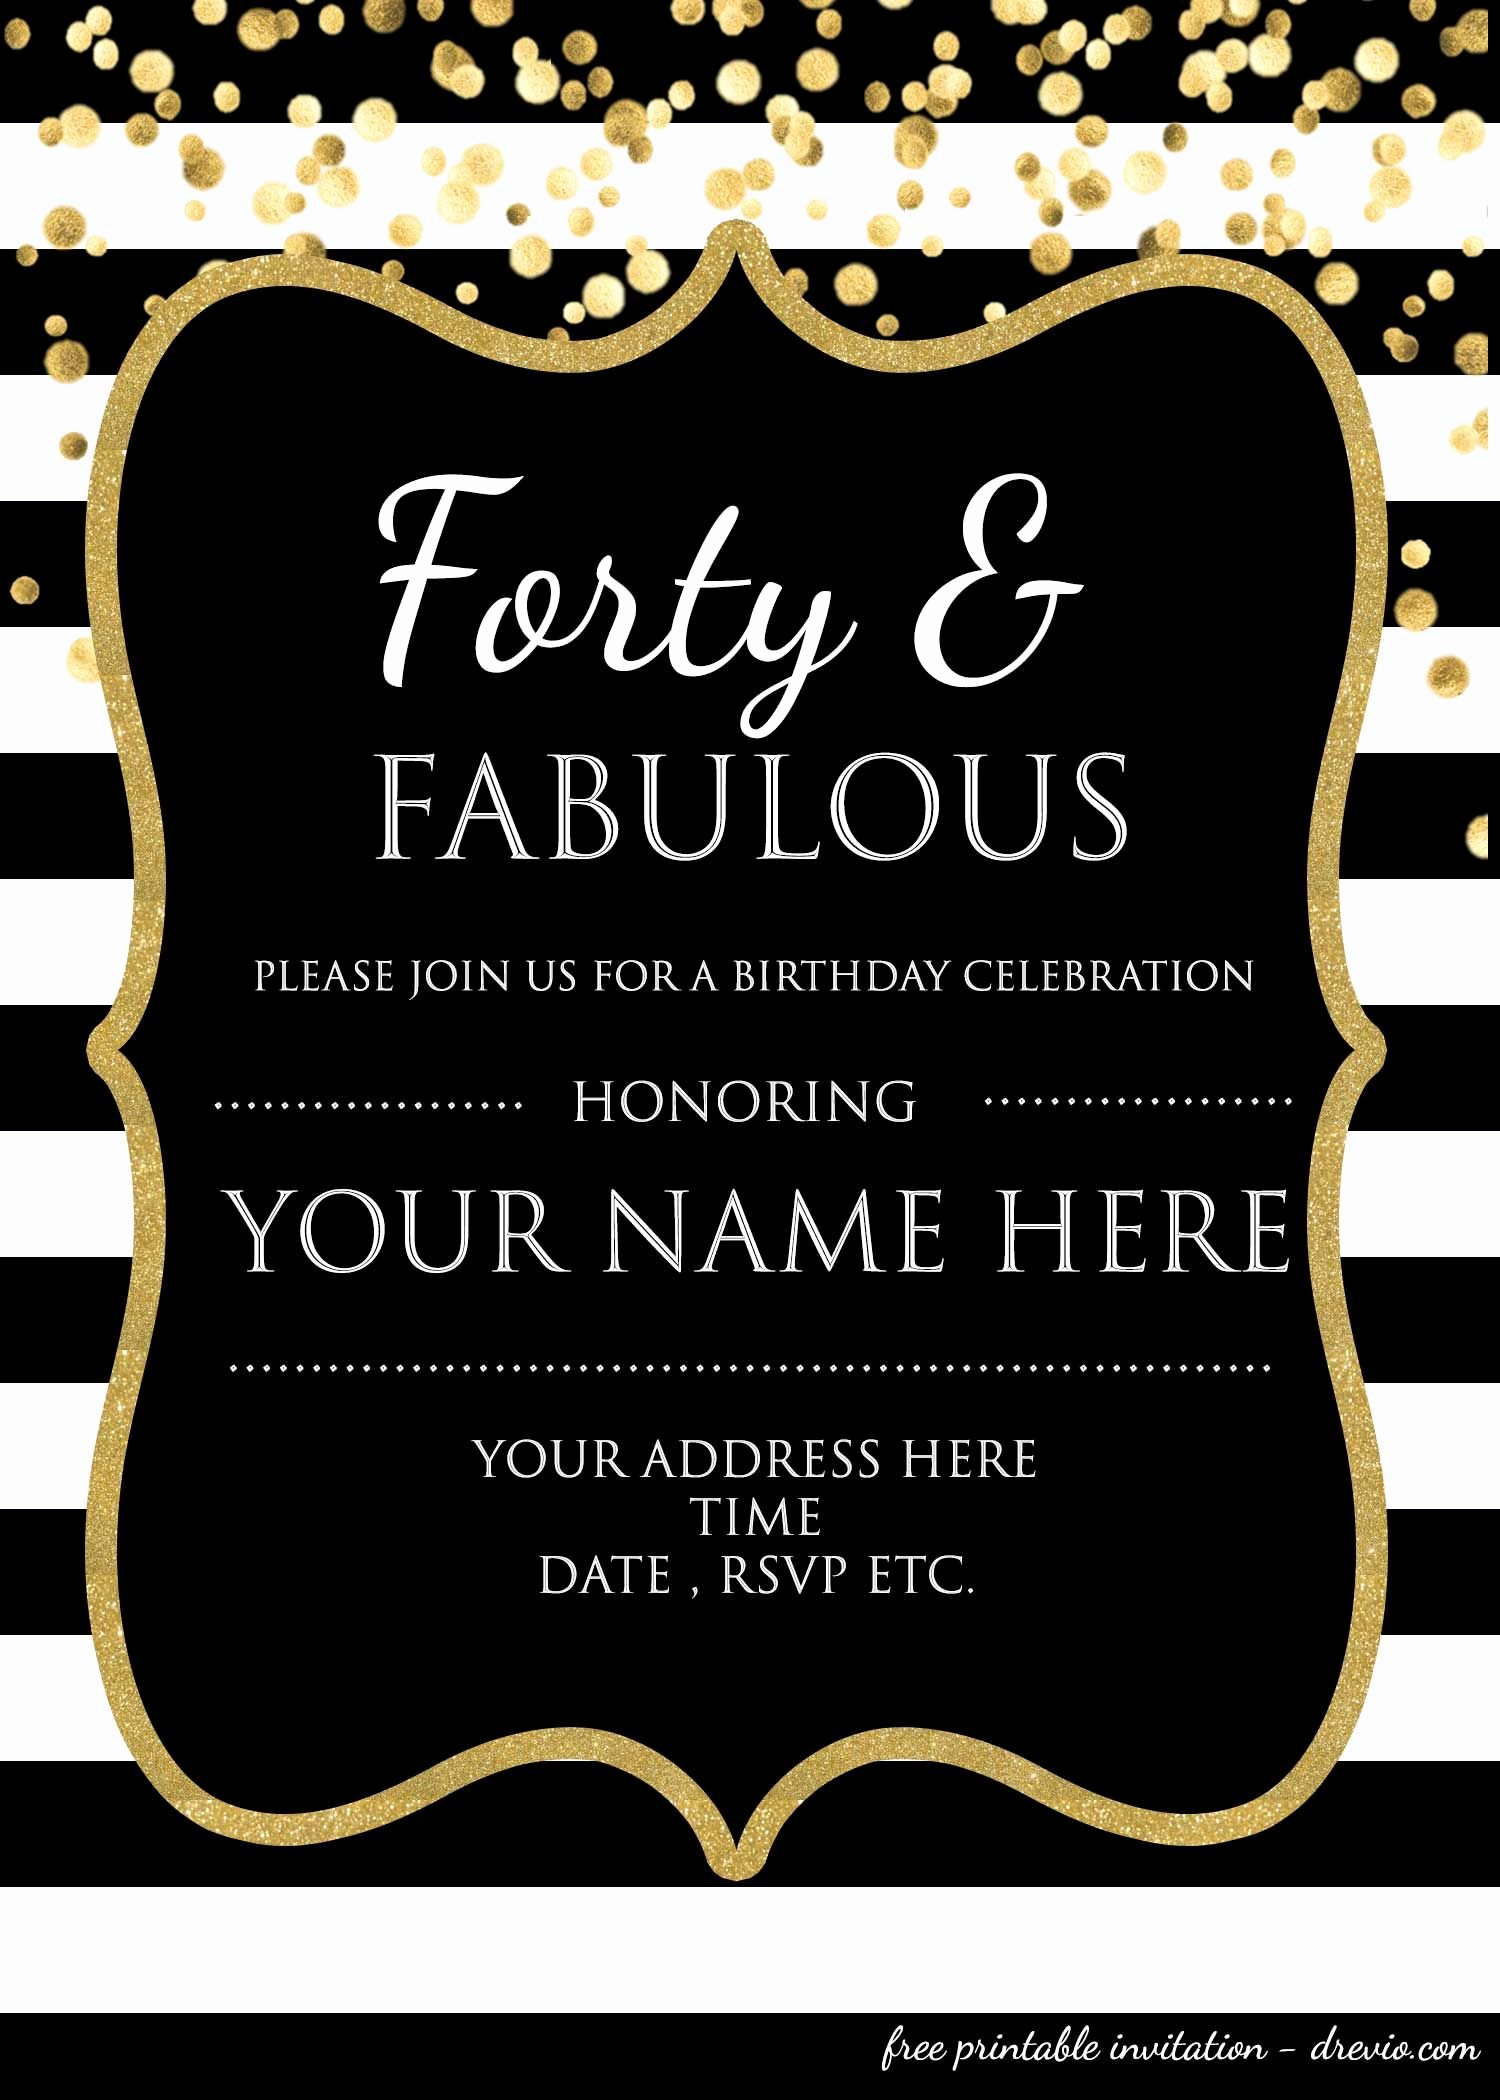 Birthday Invitation Template Photoshop Elegant Birthday Invitation Templates Psd Free Resume 1st Template